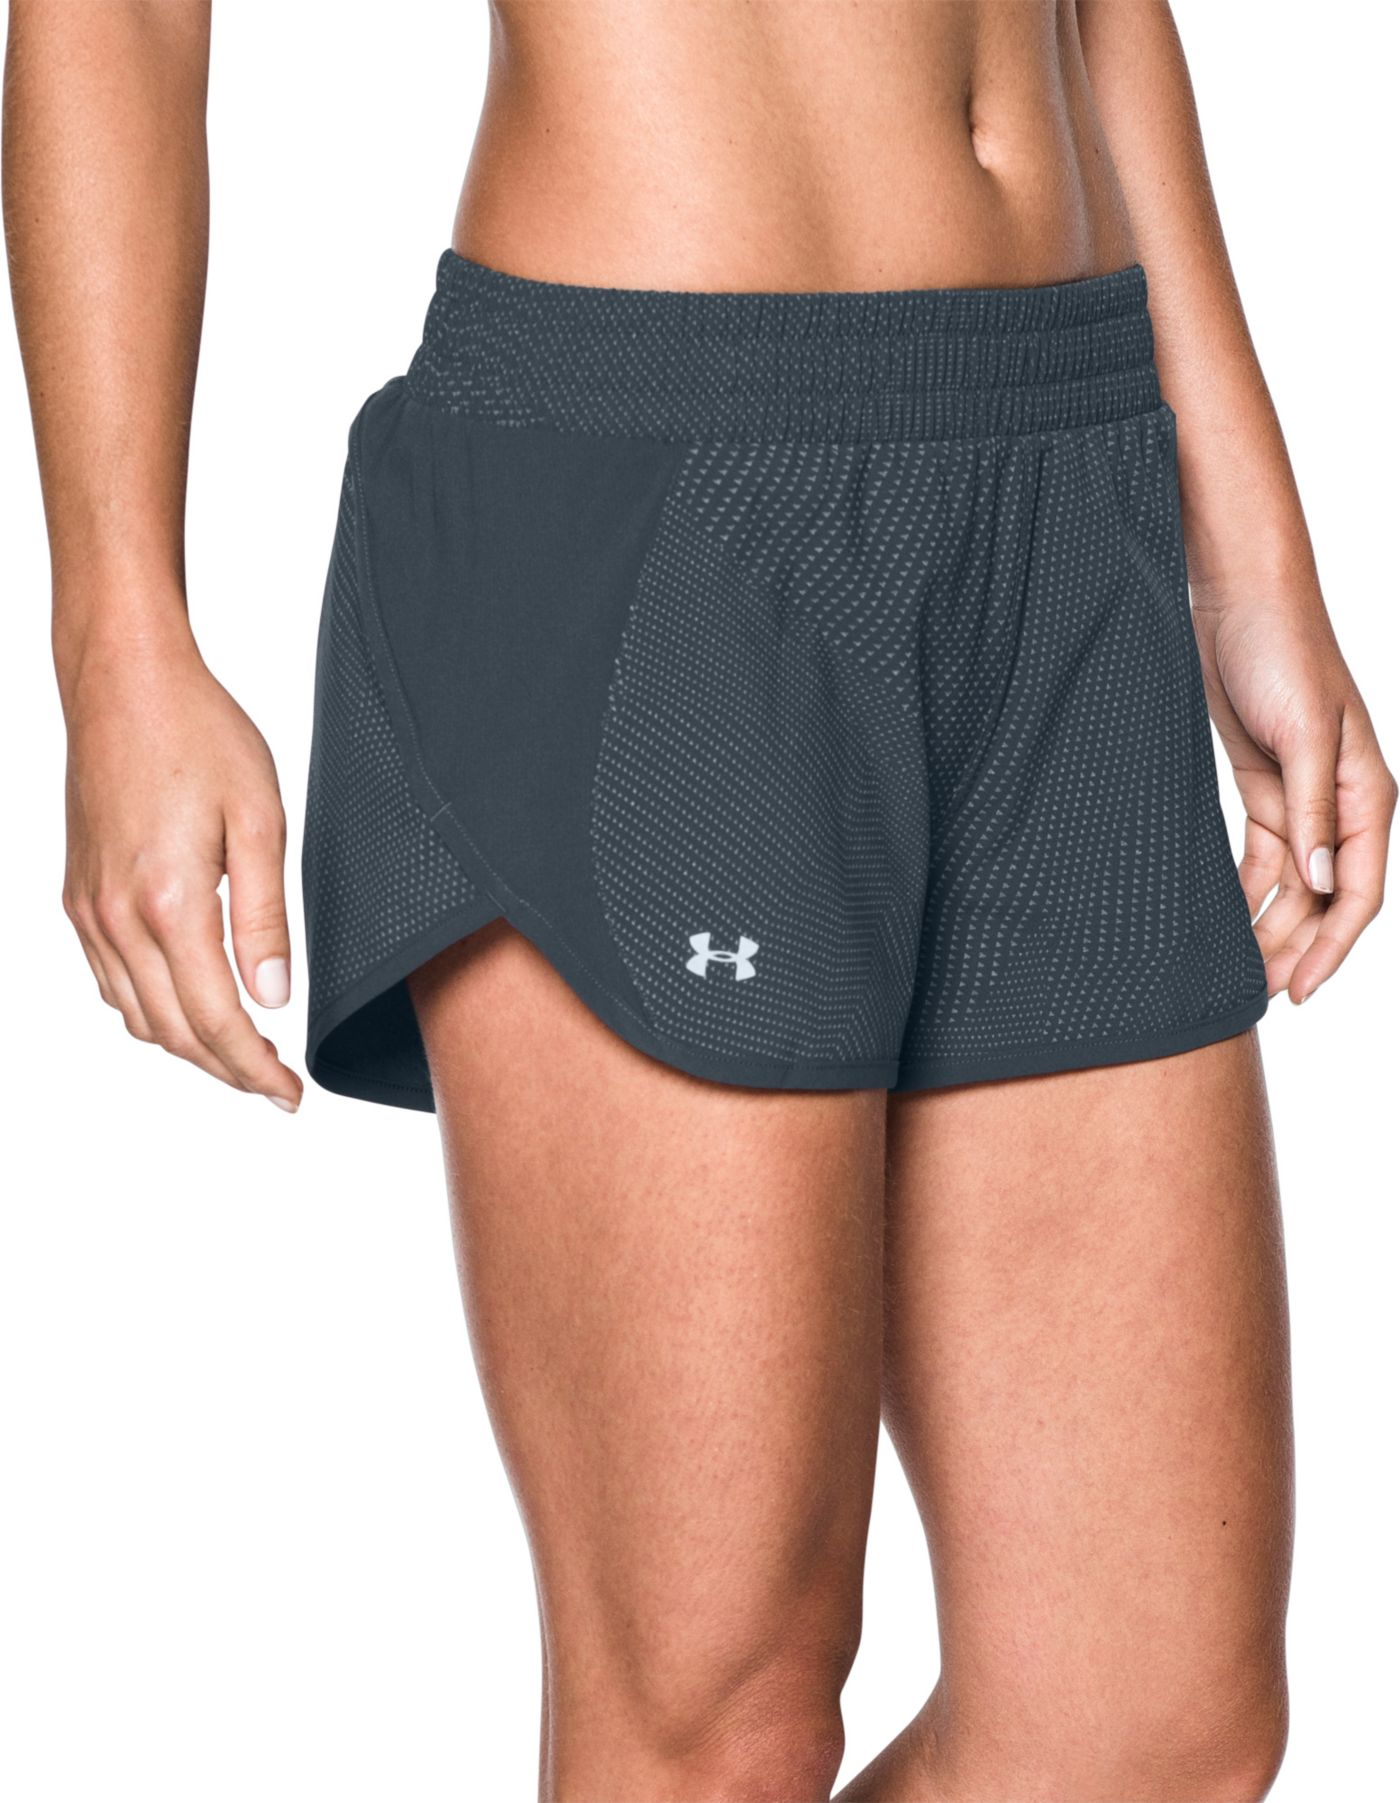 Under Armour Women's Tulip Reflective Printed Running Shorts